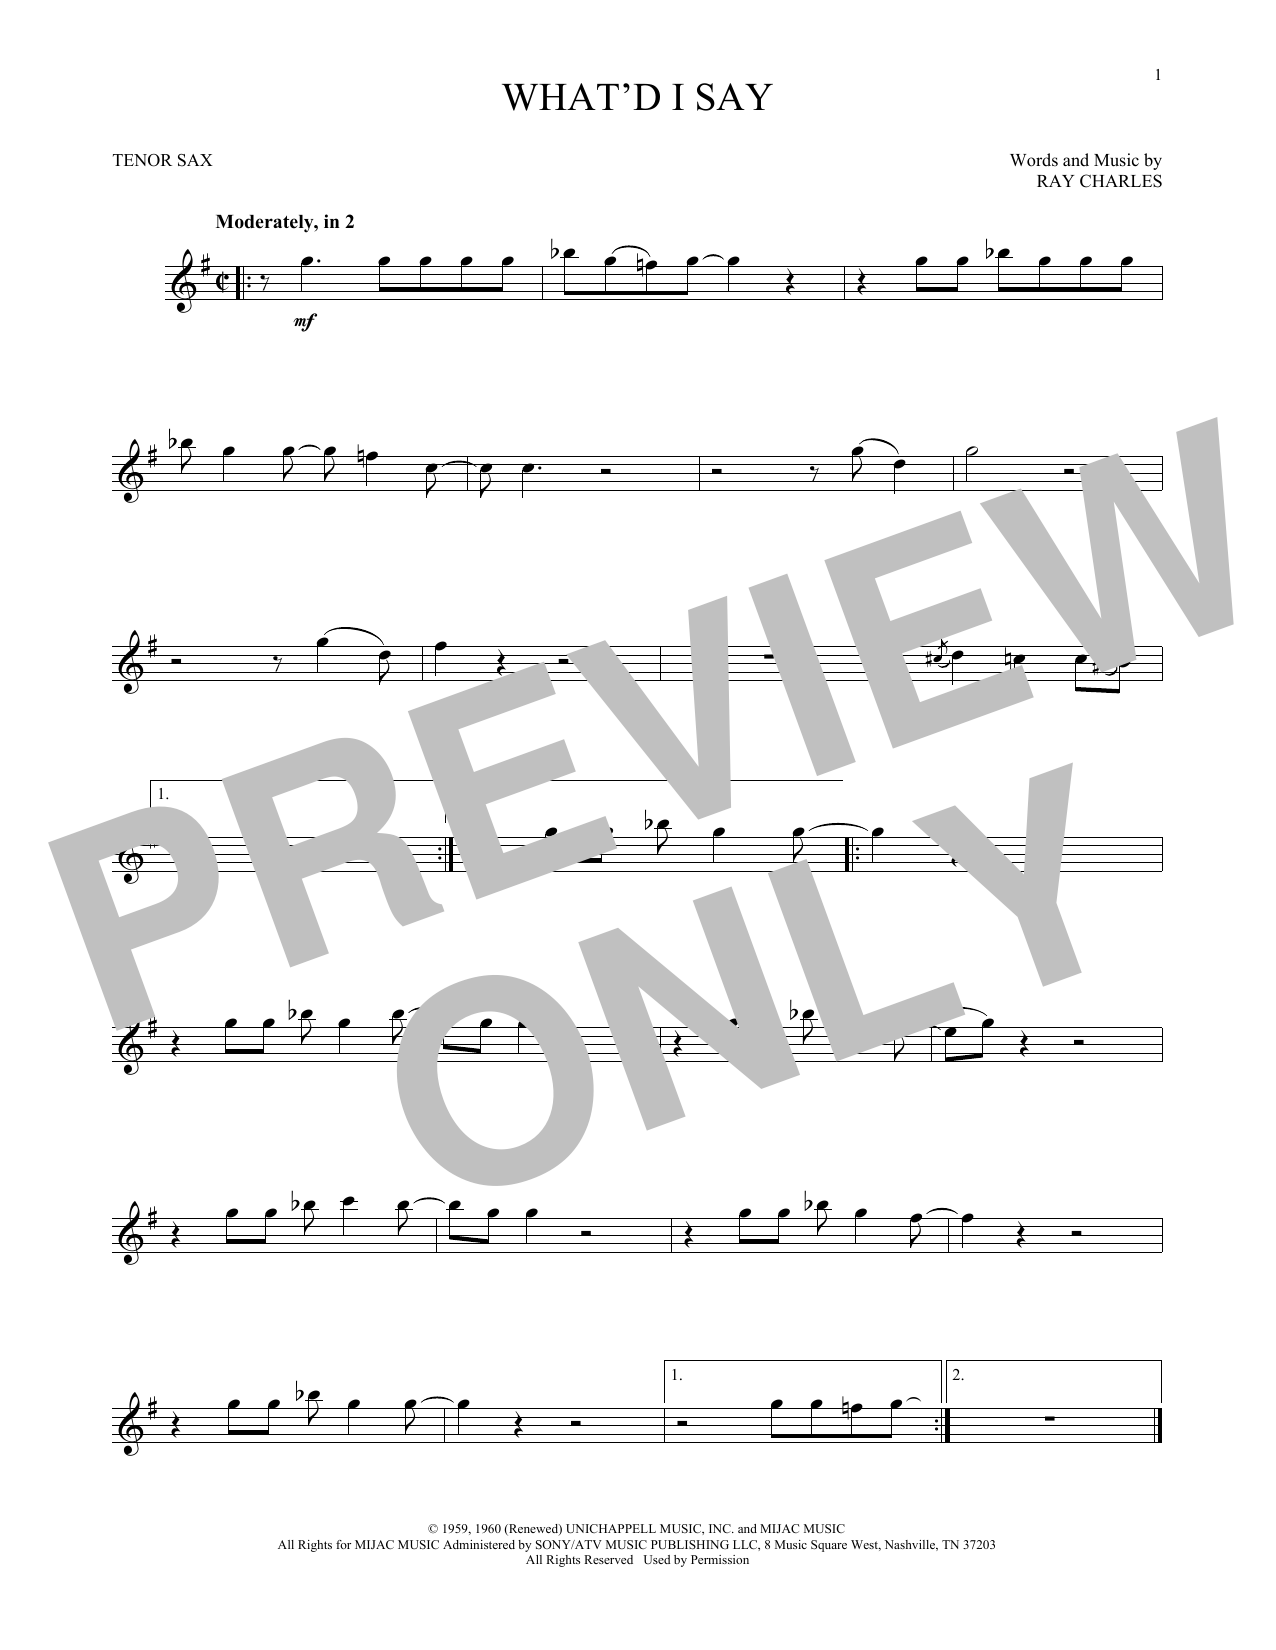 What'd I Say (Tenor Sax Solo)